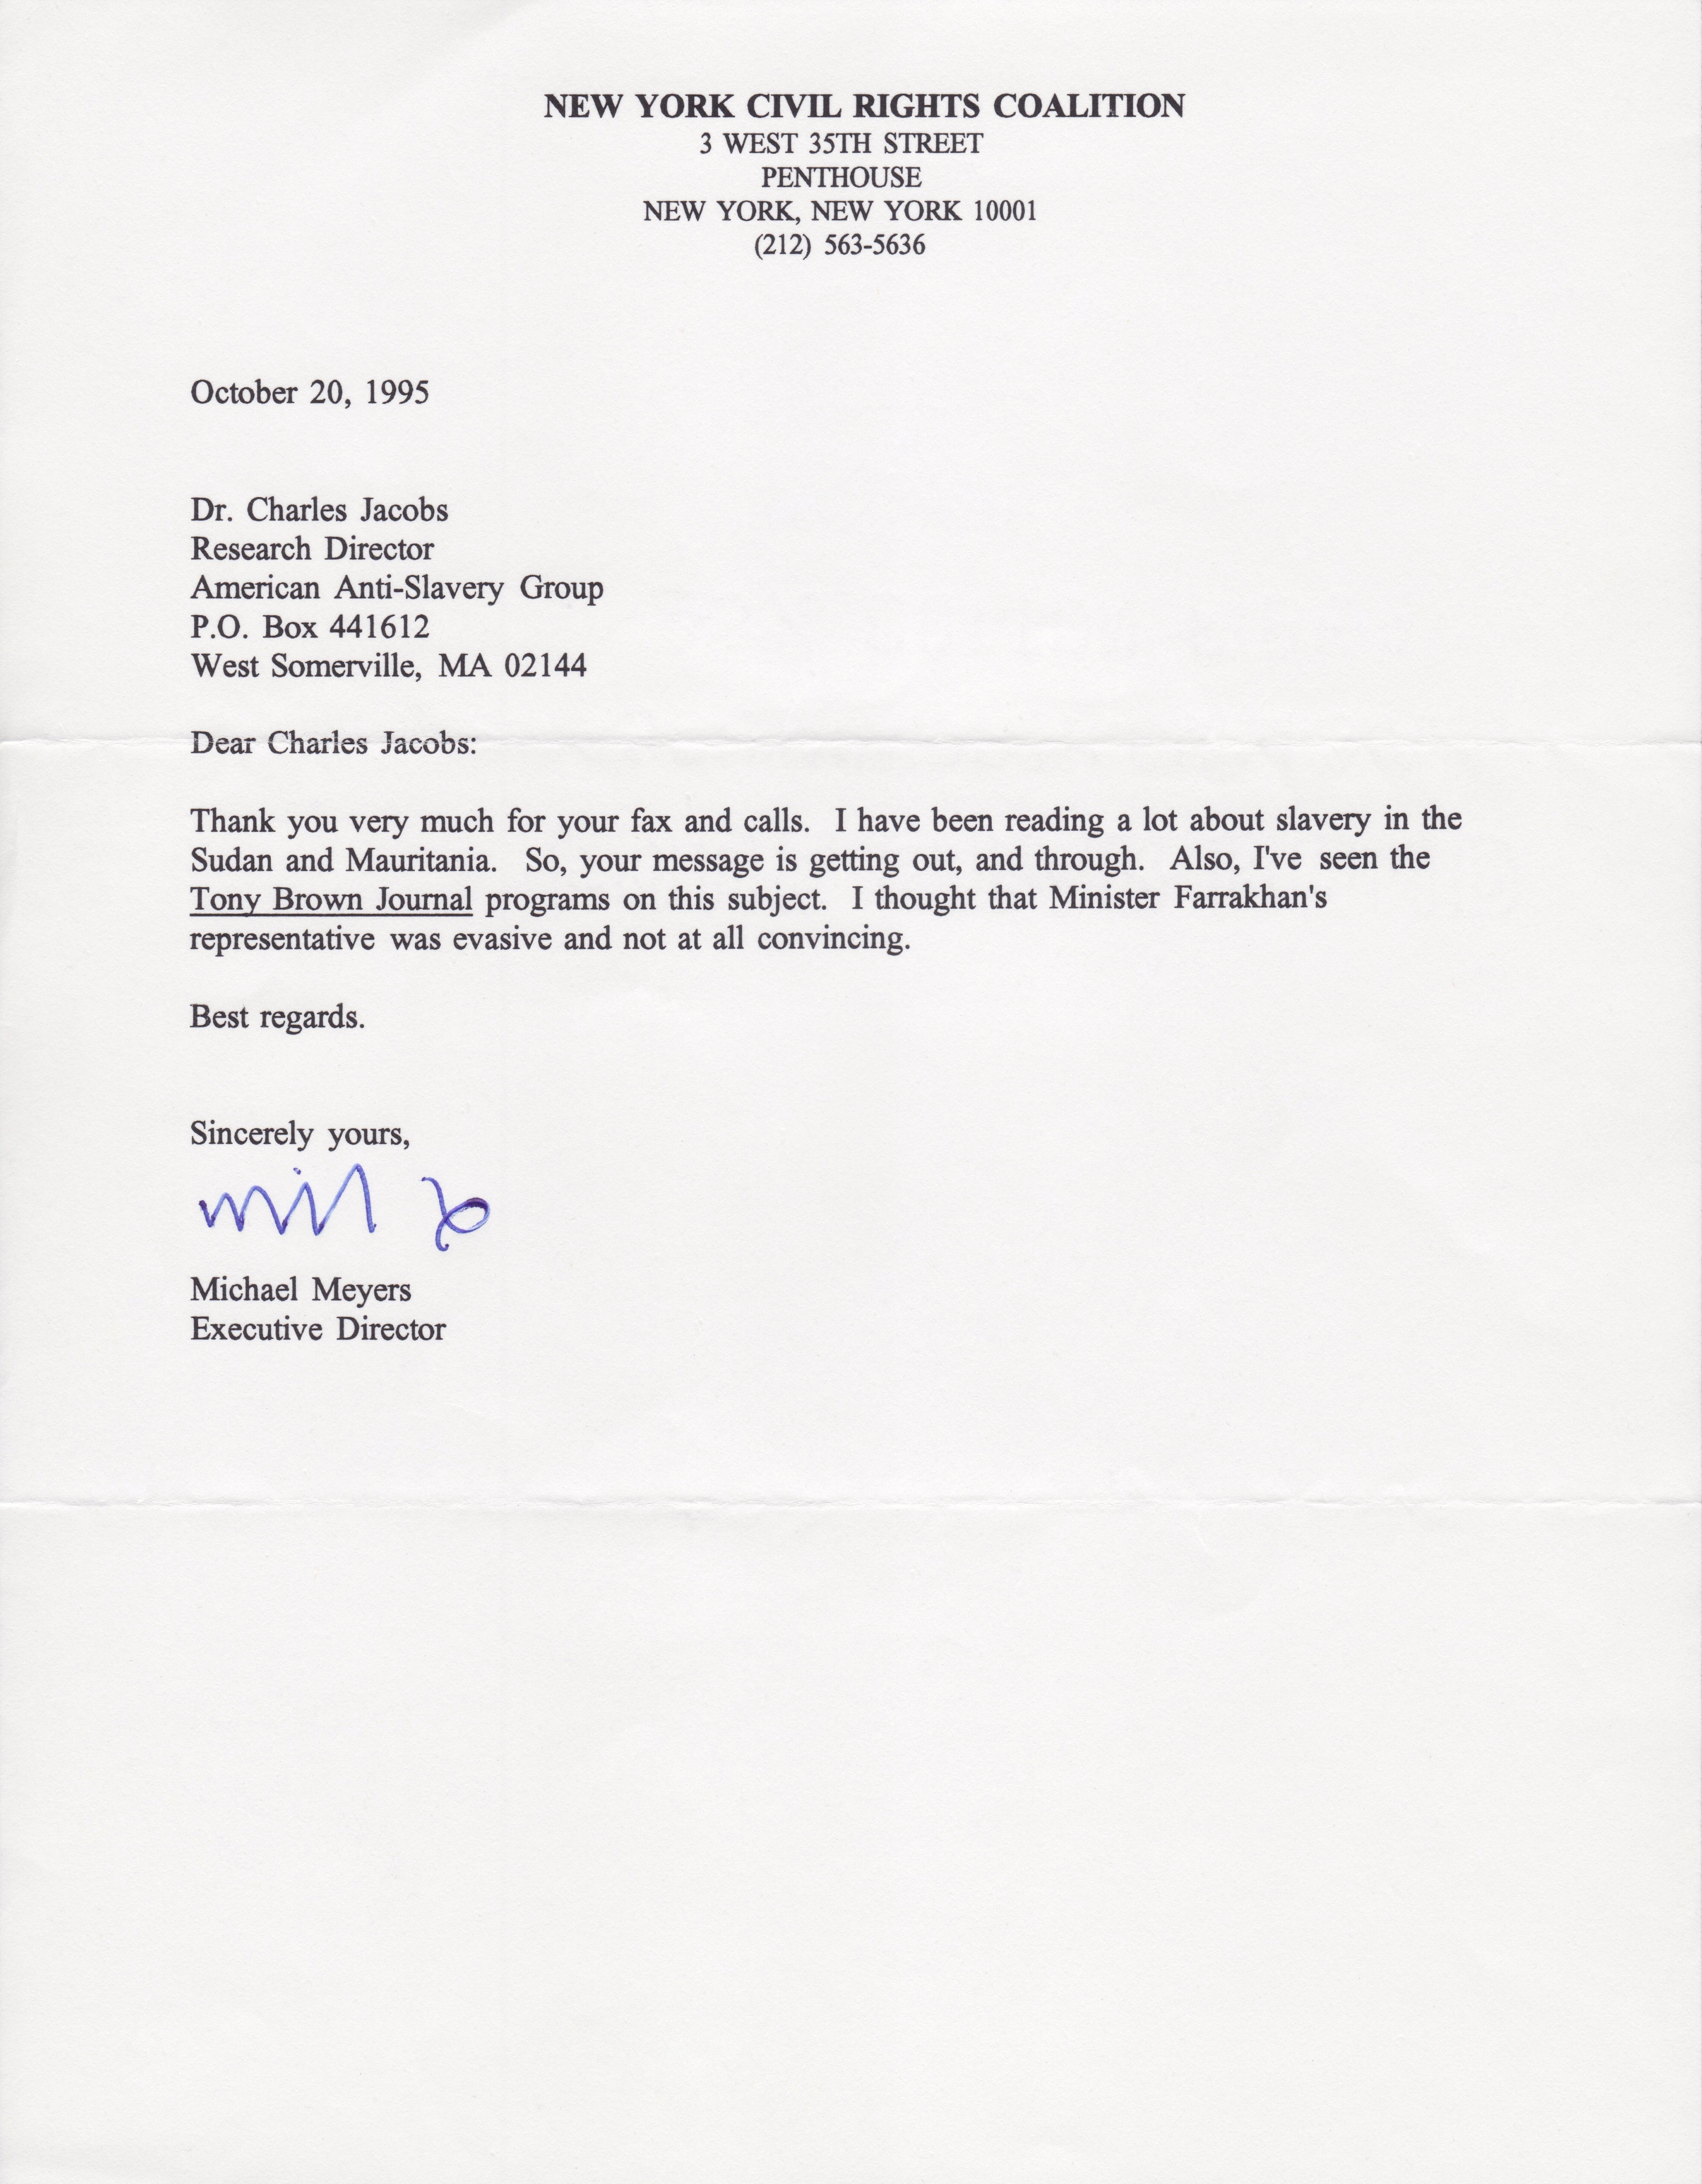 Letter to Dr. Charles Jacobs from Michael Meyers (October 20, 1995)